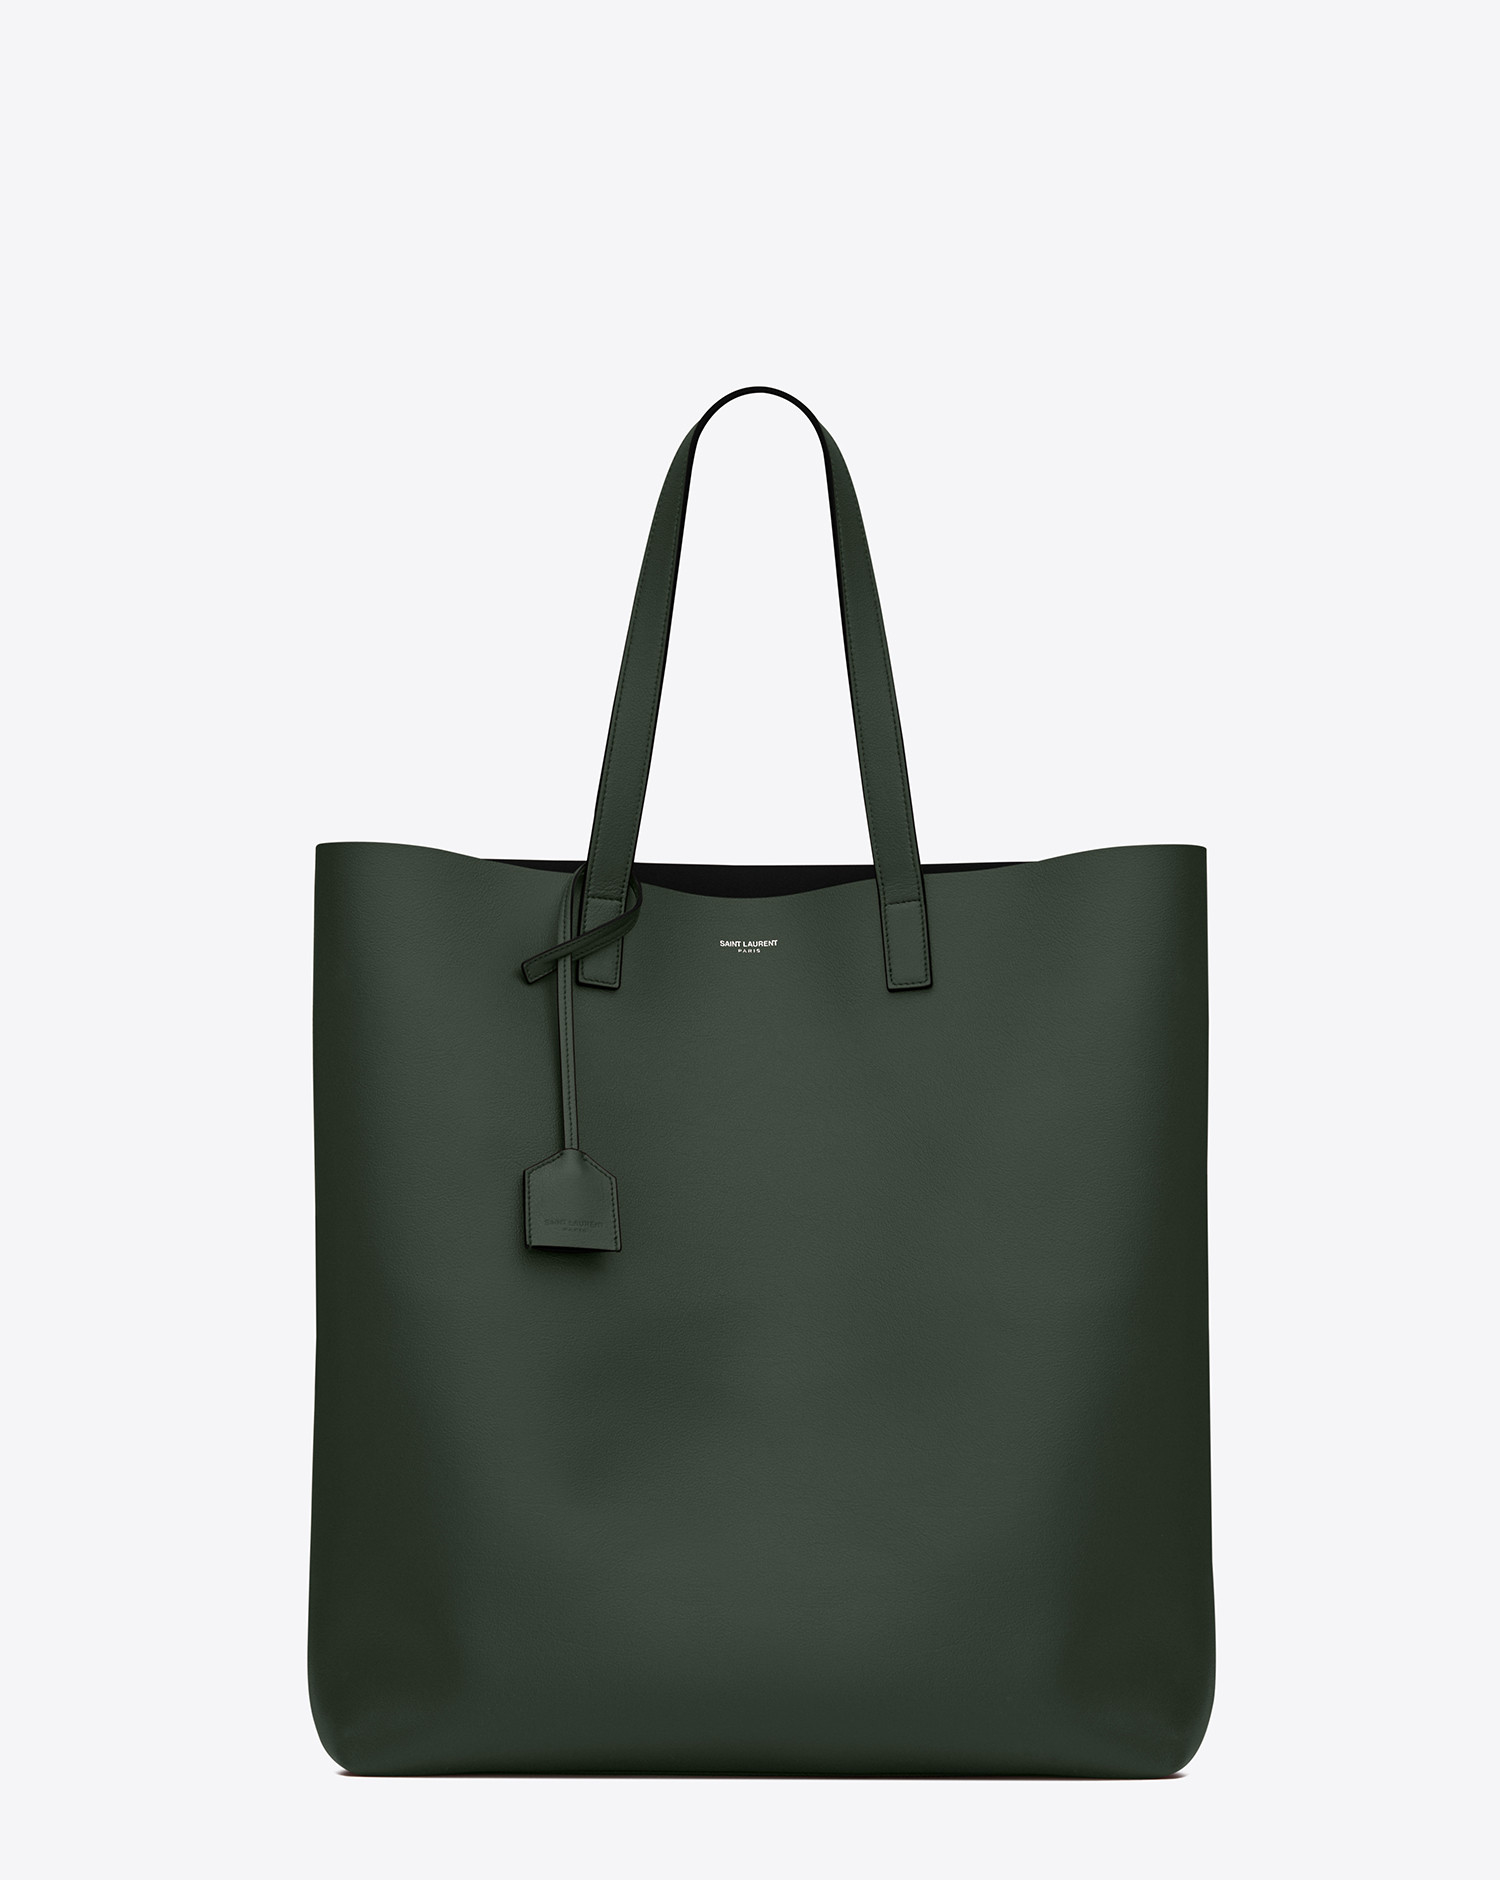 lyst saint laurent shopping tote bag in dark green and black leather in green. Black Bedroom Furniture Sets. Home Design Ideas